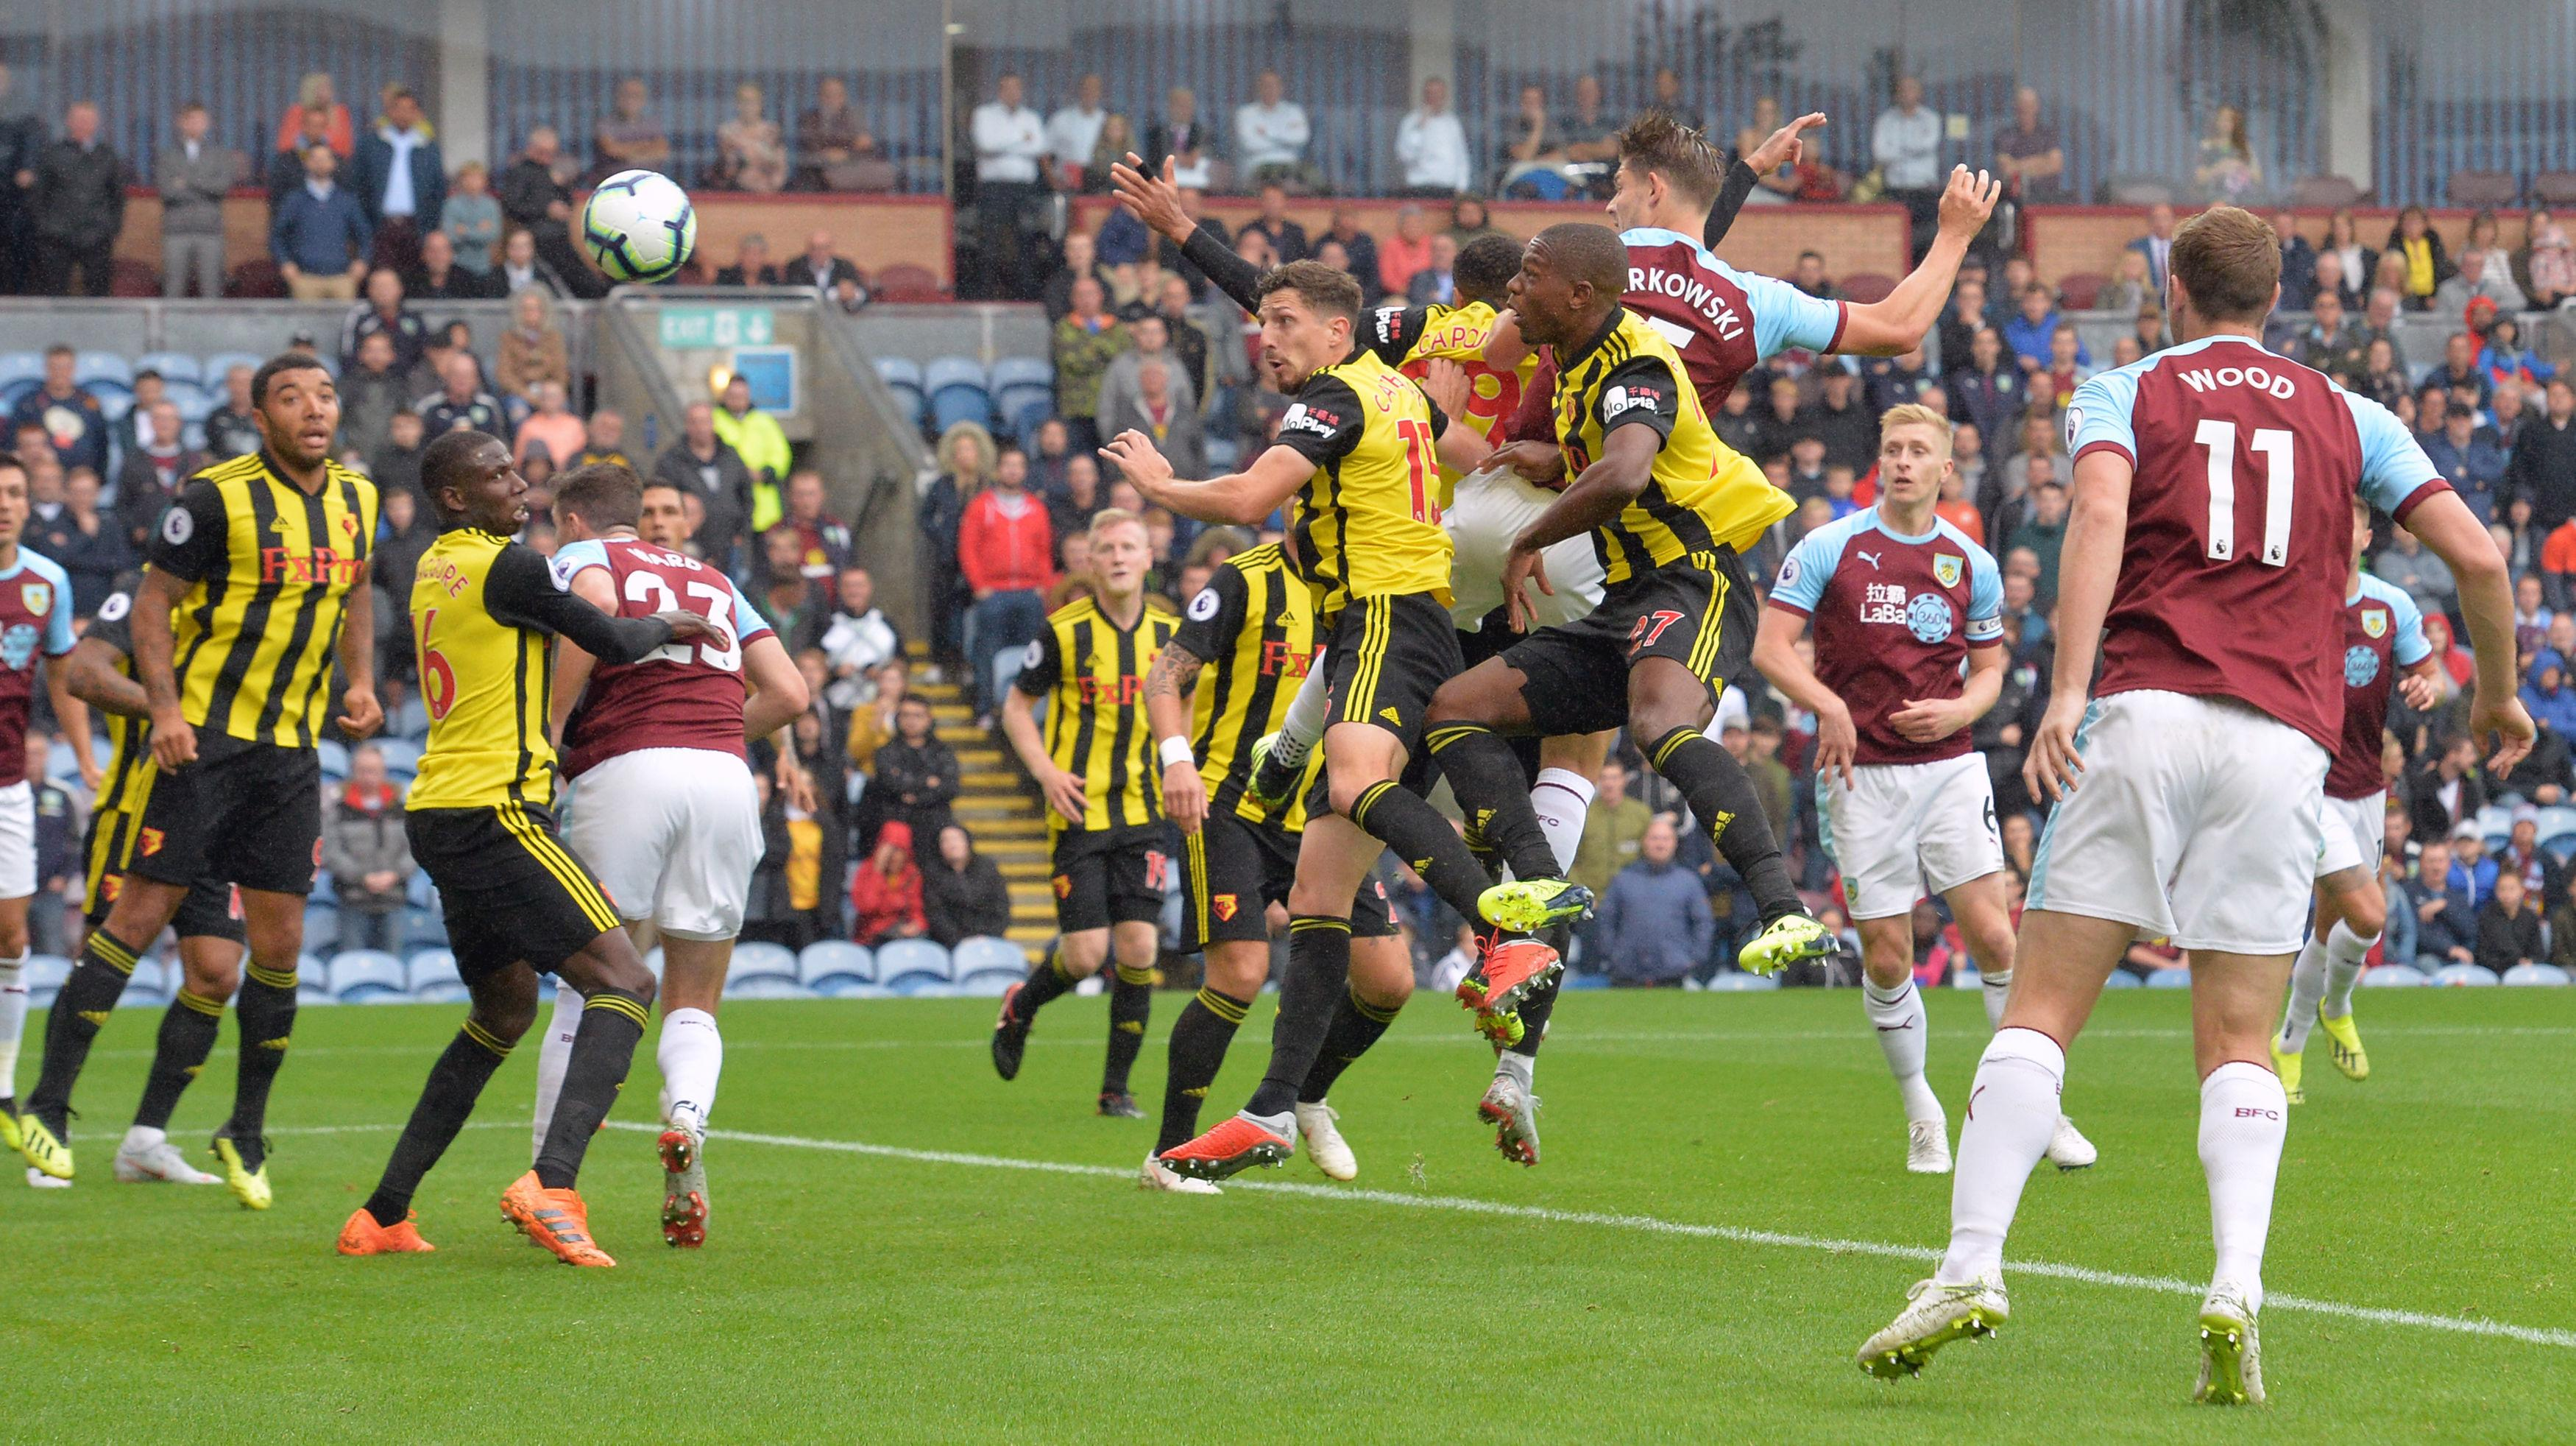 Burnley centre-back James Tarkowski equalised with a clinical header in the sixth minute